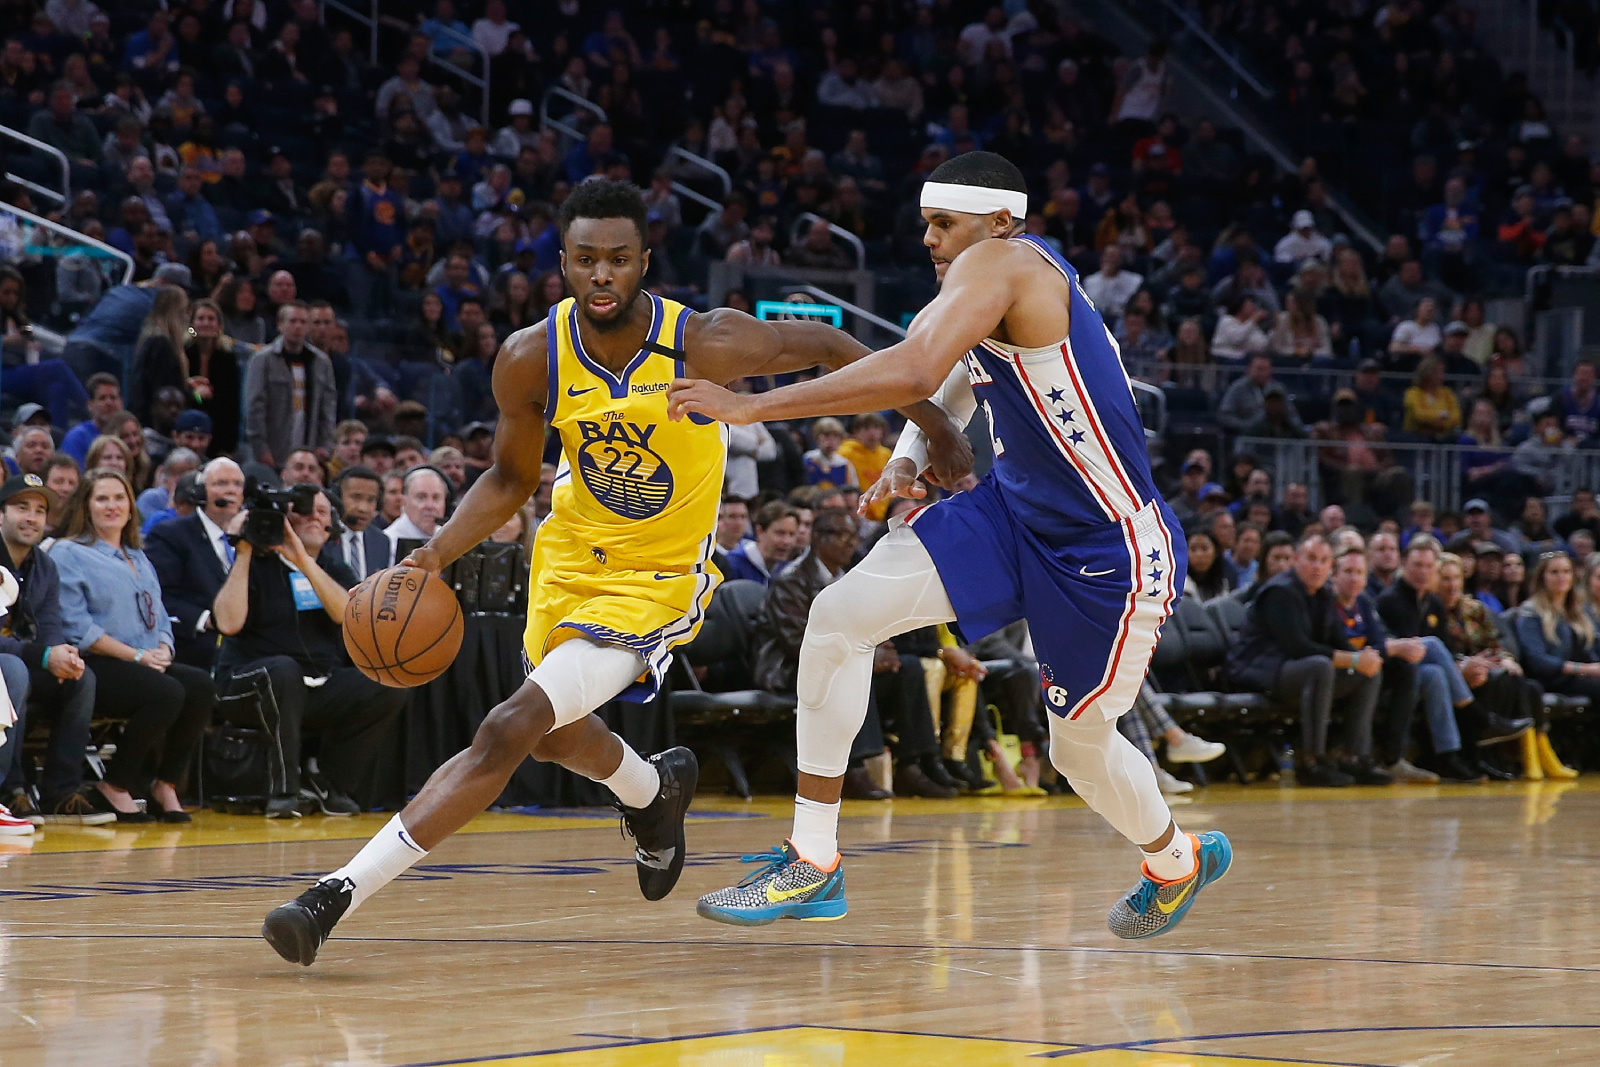 Andrew Wiggins is in an explosive backcourt on the Golden State Warriors. He recently sent an encouraging message about that backcourt, too.